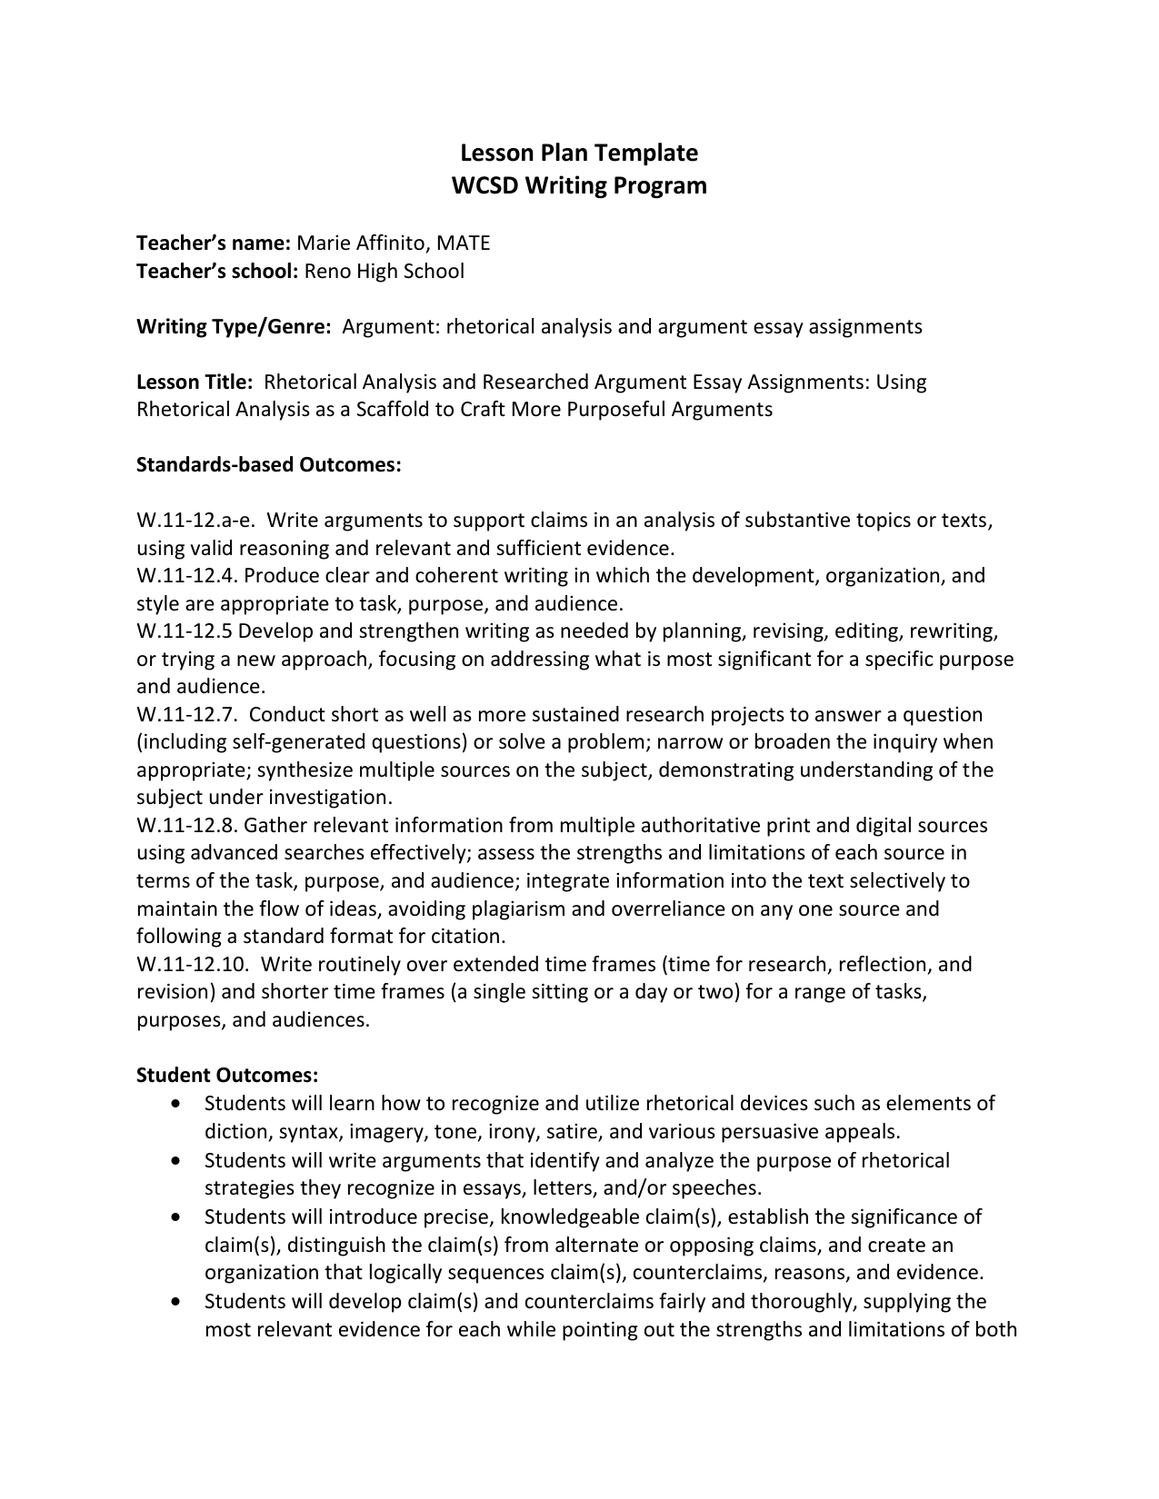 Rhetorical Analysis Outline Worksheet Rhetorical Analysis and Researched Argument Essay